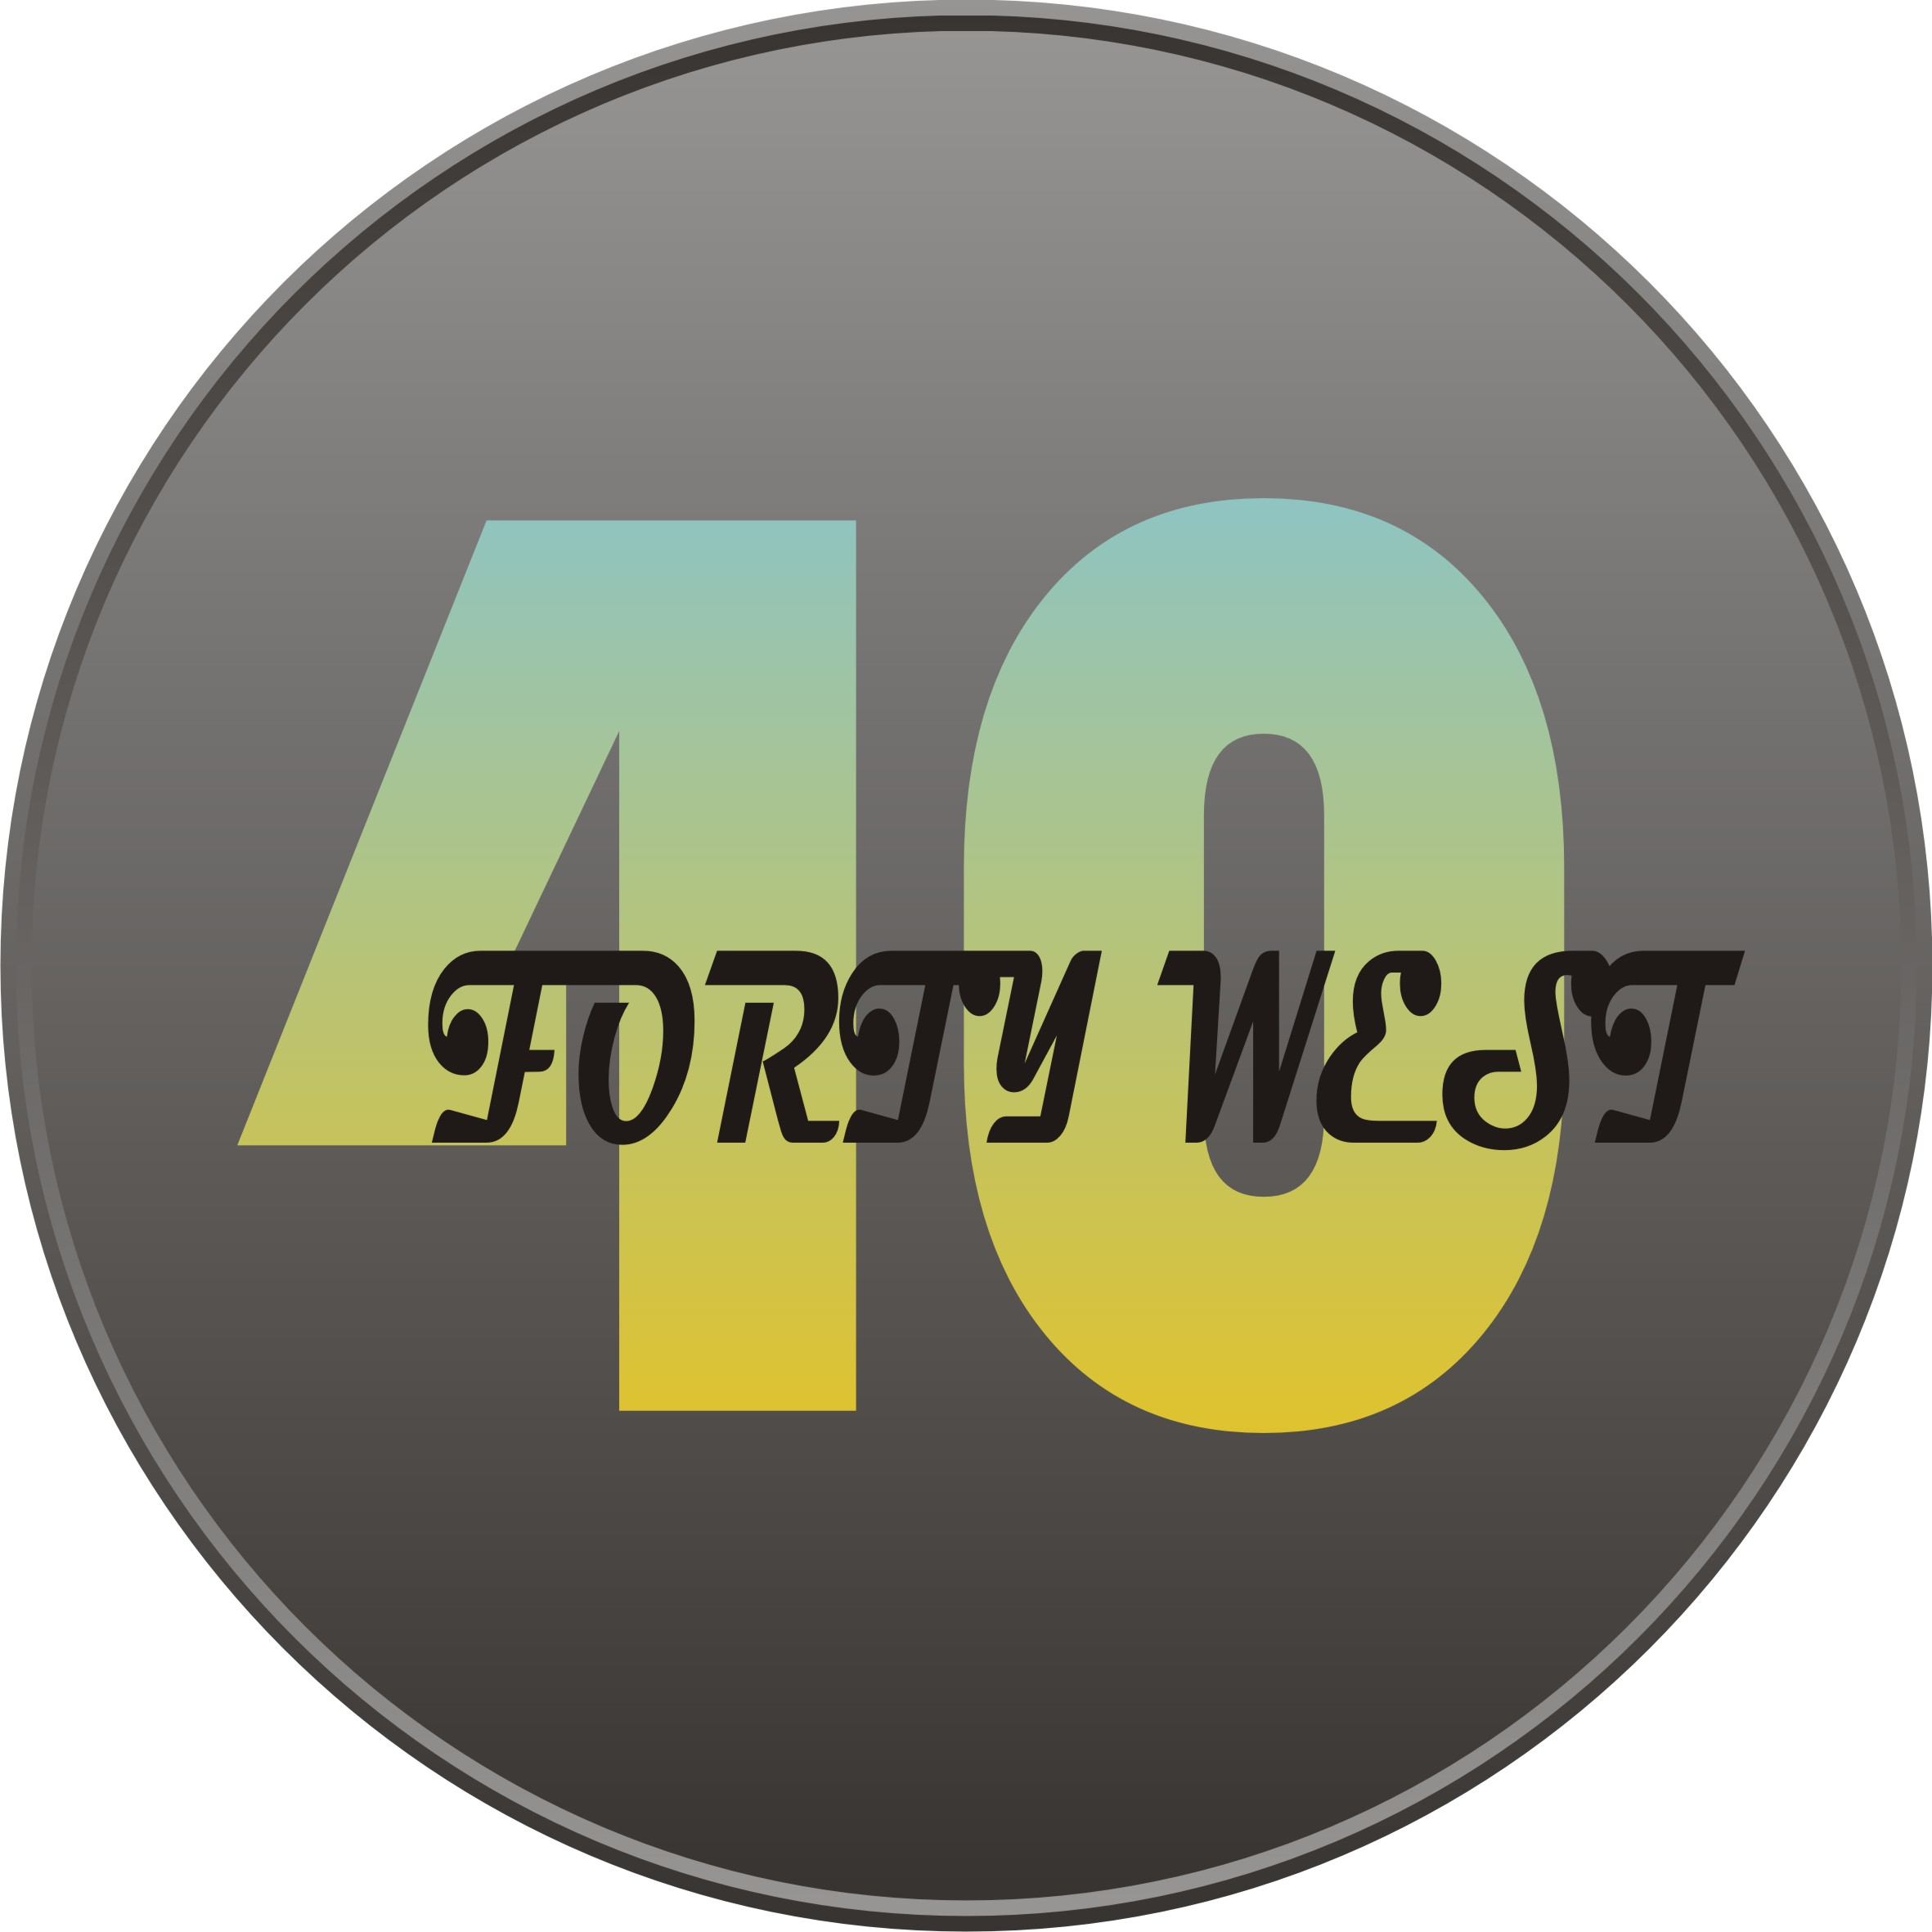 Logo Design by Sigit Nurcahyo - Entry No. 234 in the Logo Design Contest Unique Logo Design Wanted for Forty West.